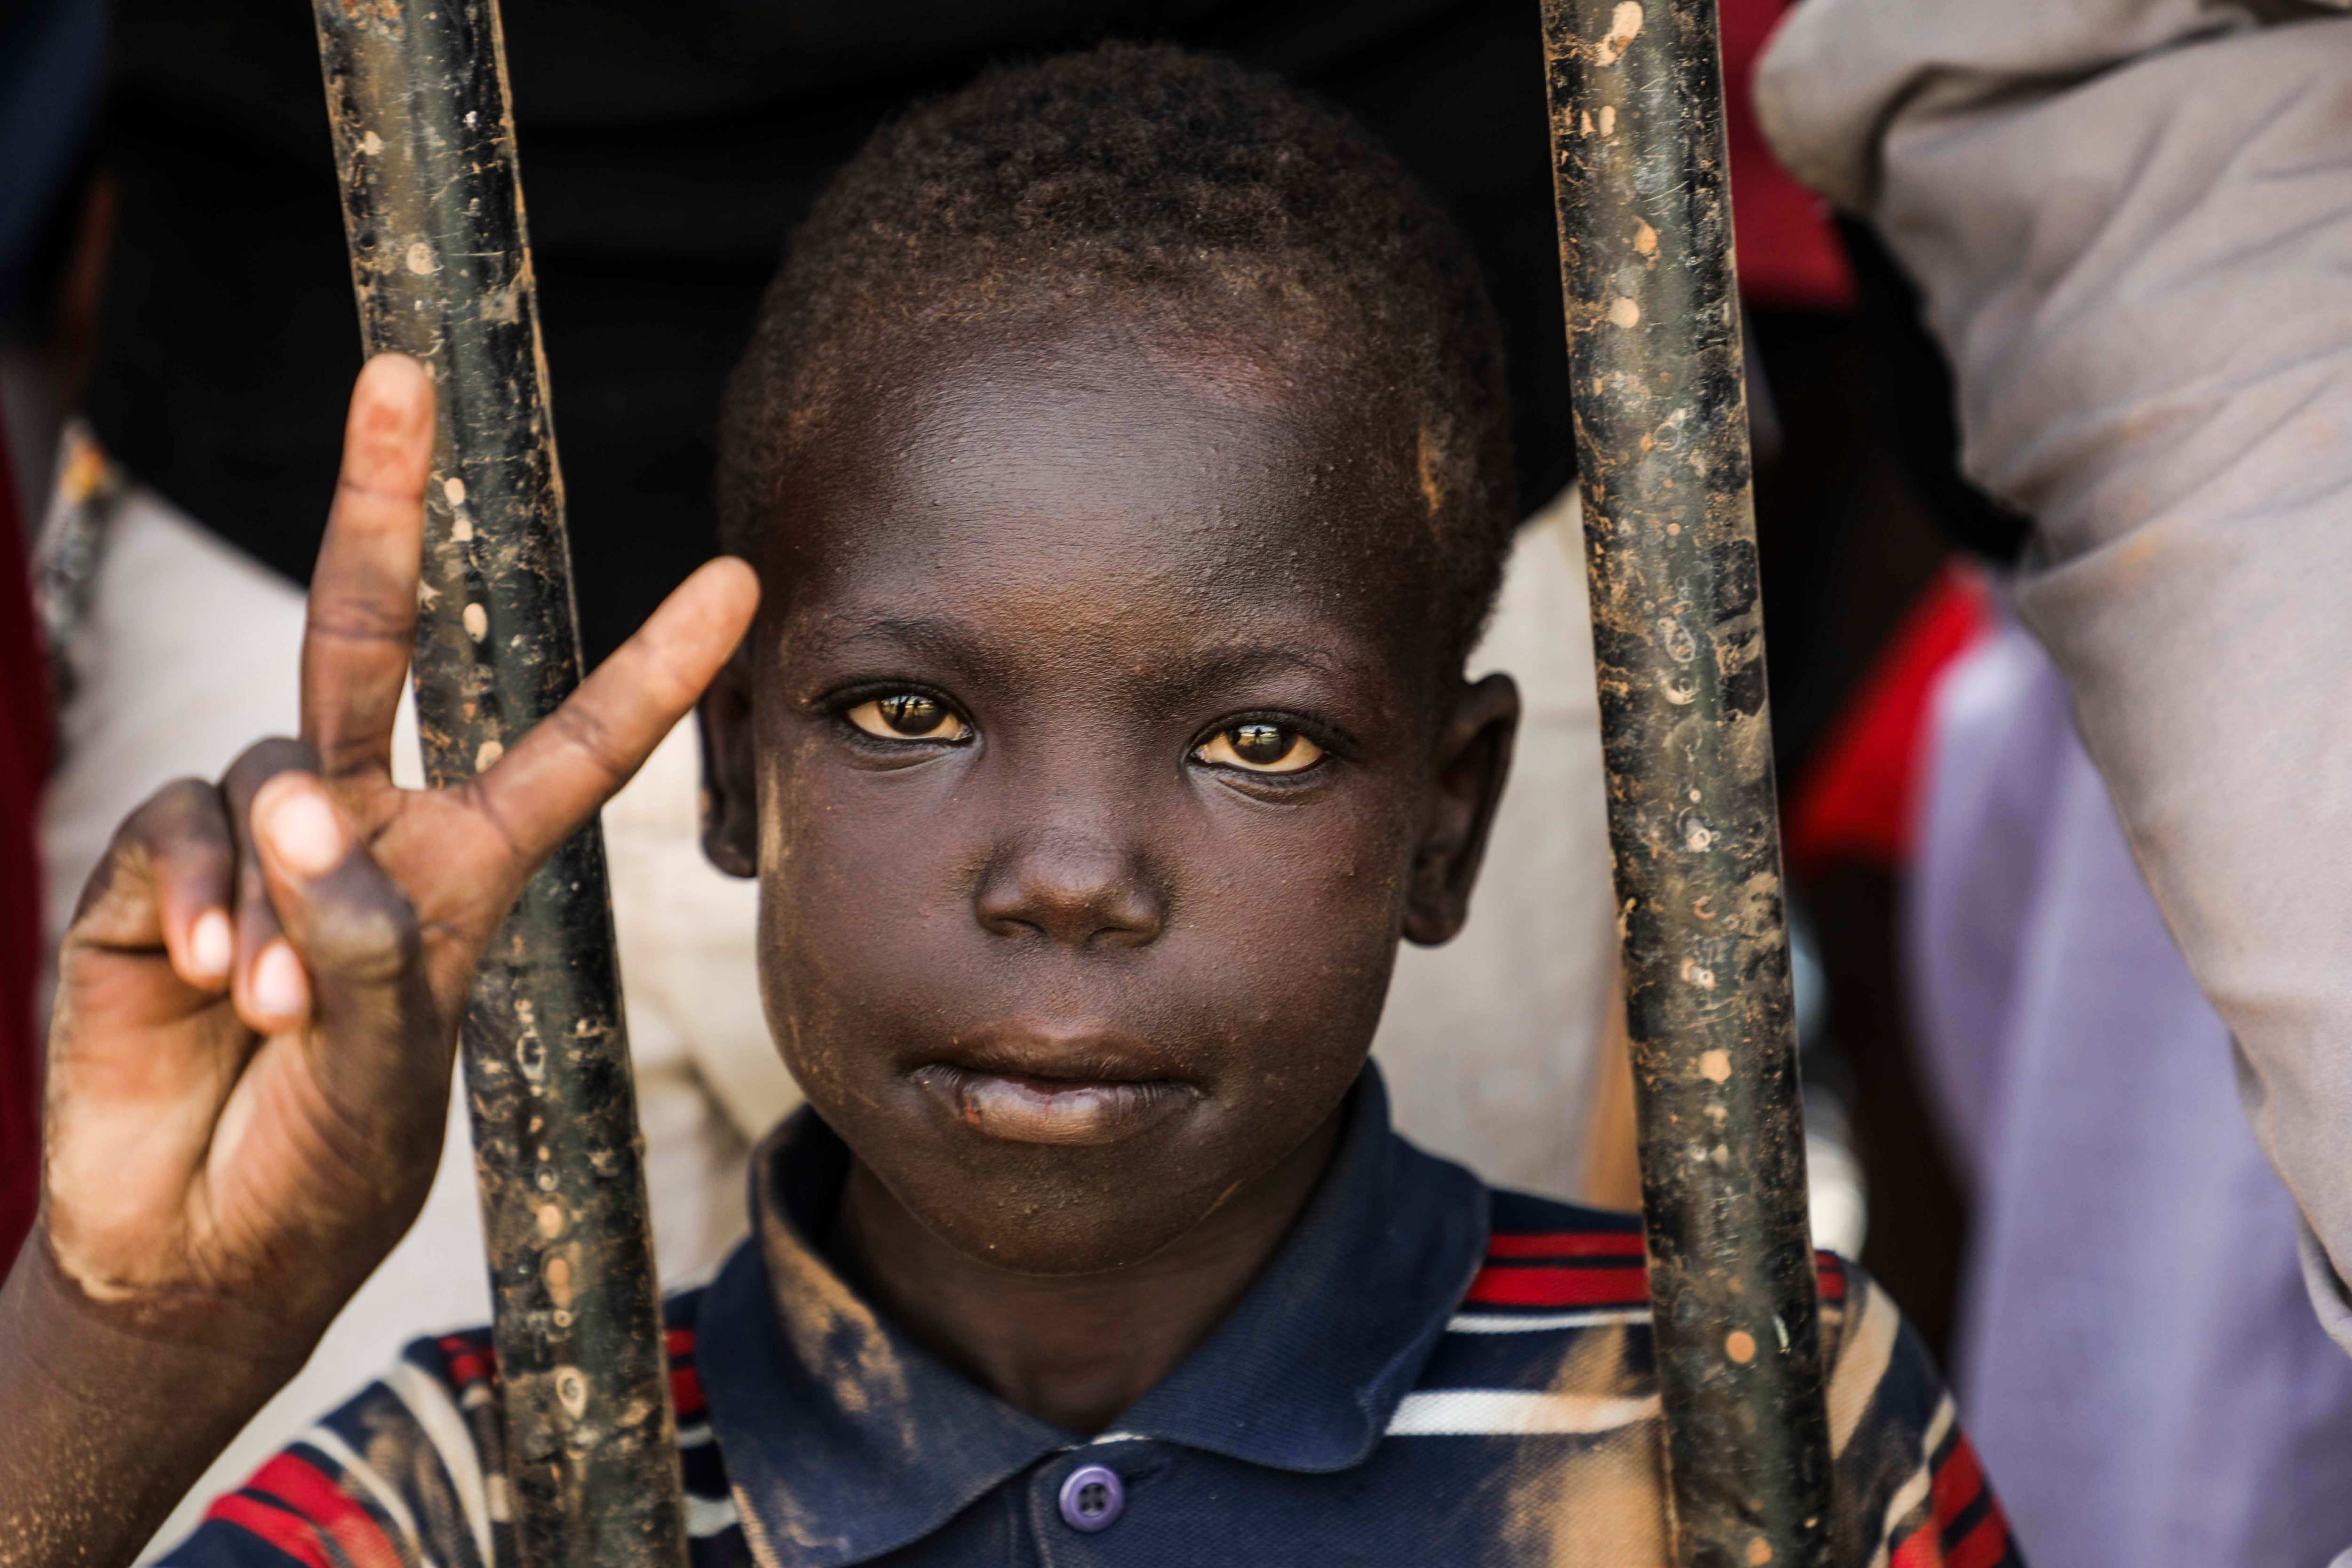 A Sudanese boy flashes the victory sign during the protest.